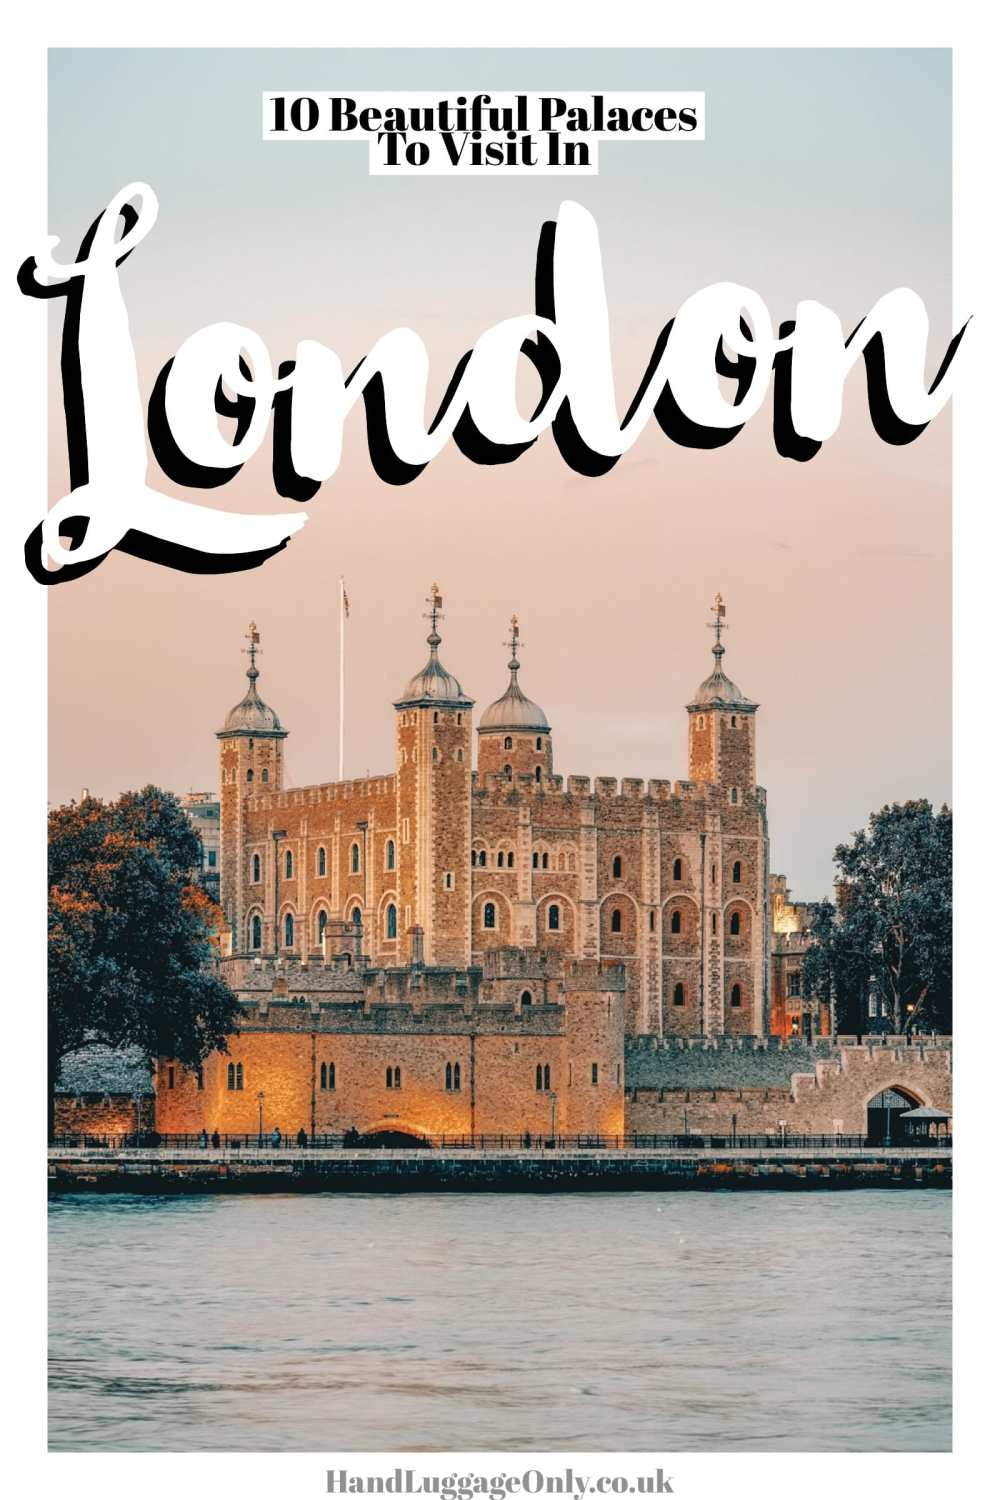 10 Beautiful Palaces In London You Have To Visit (1)